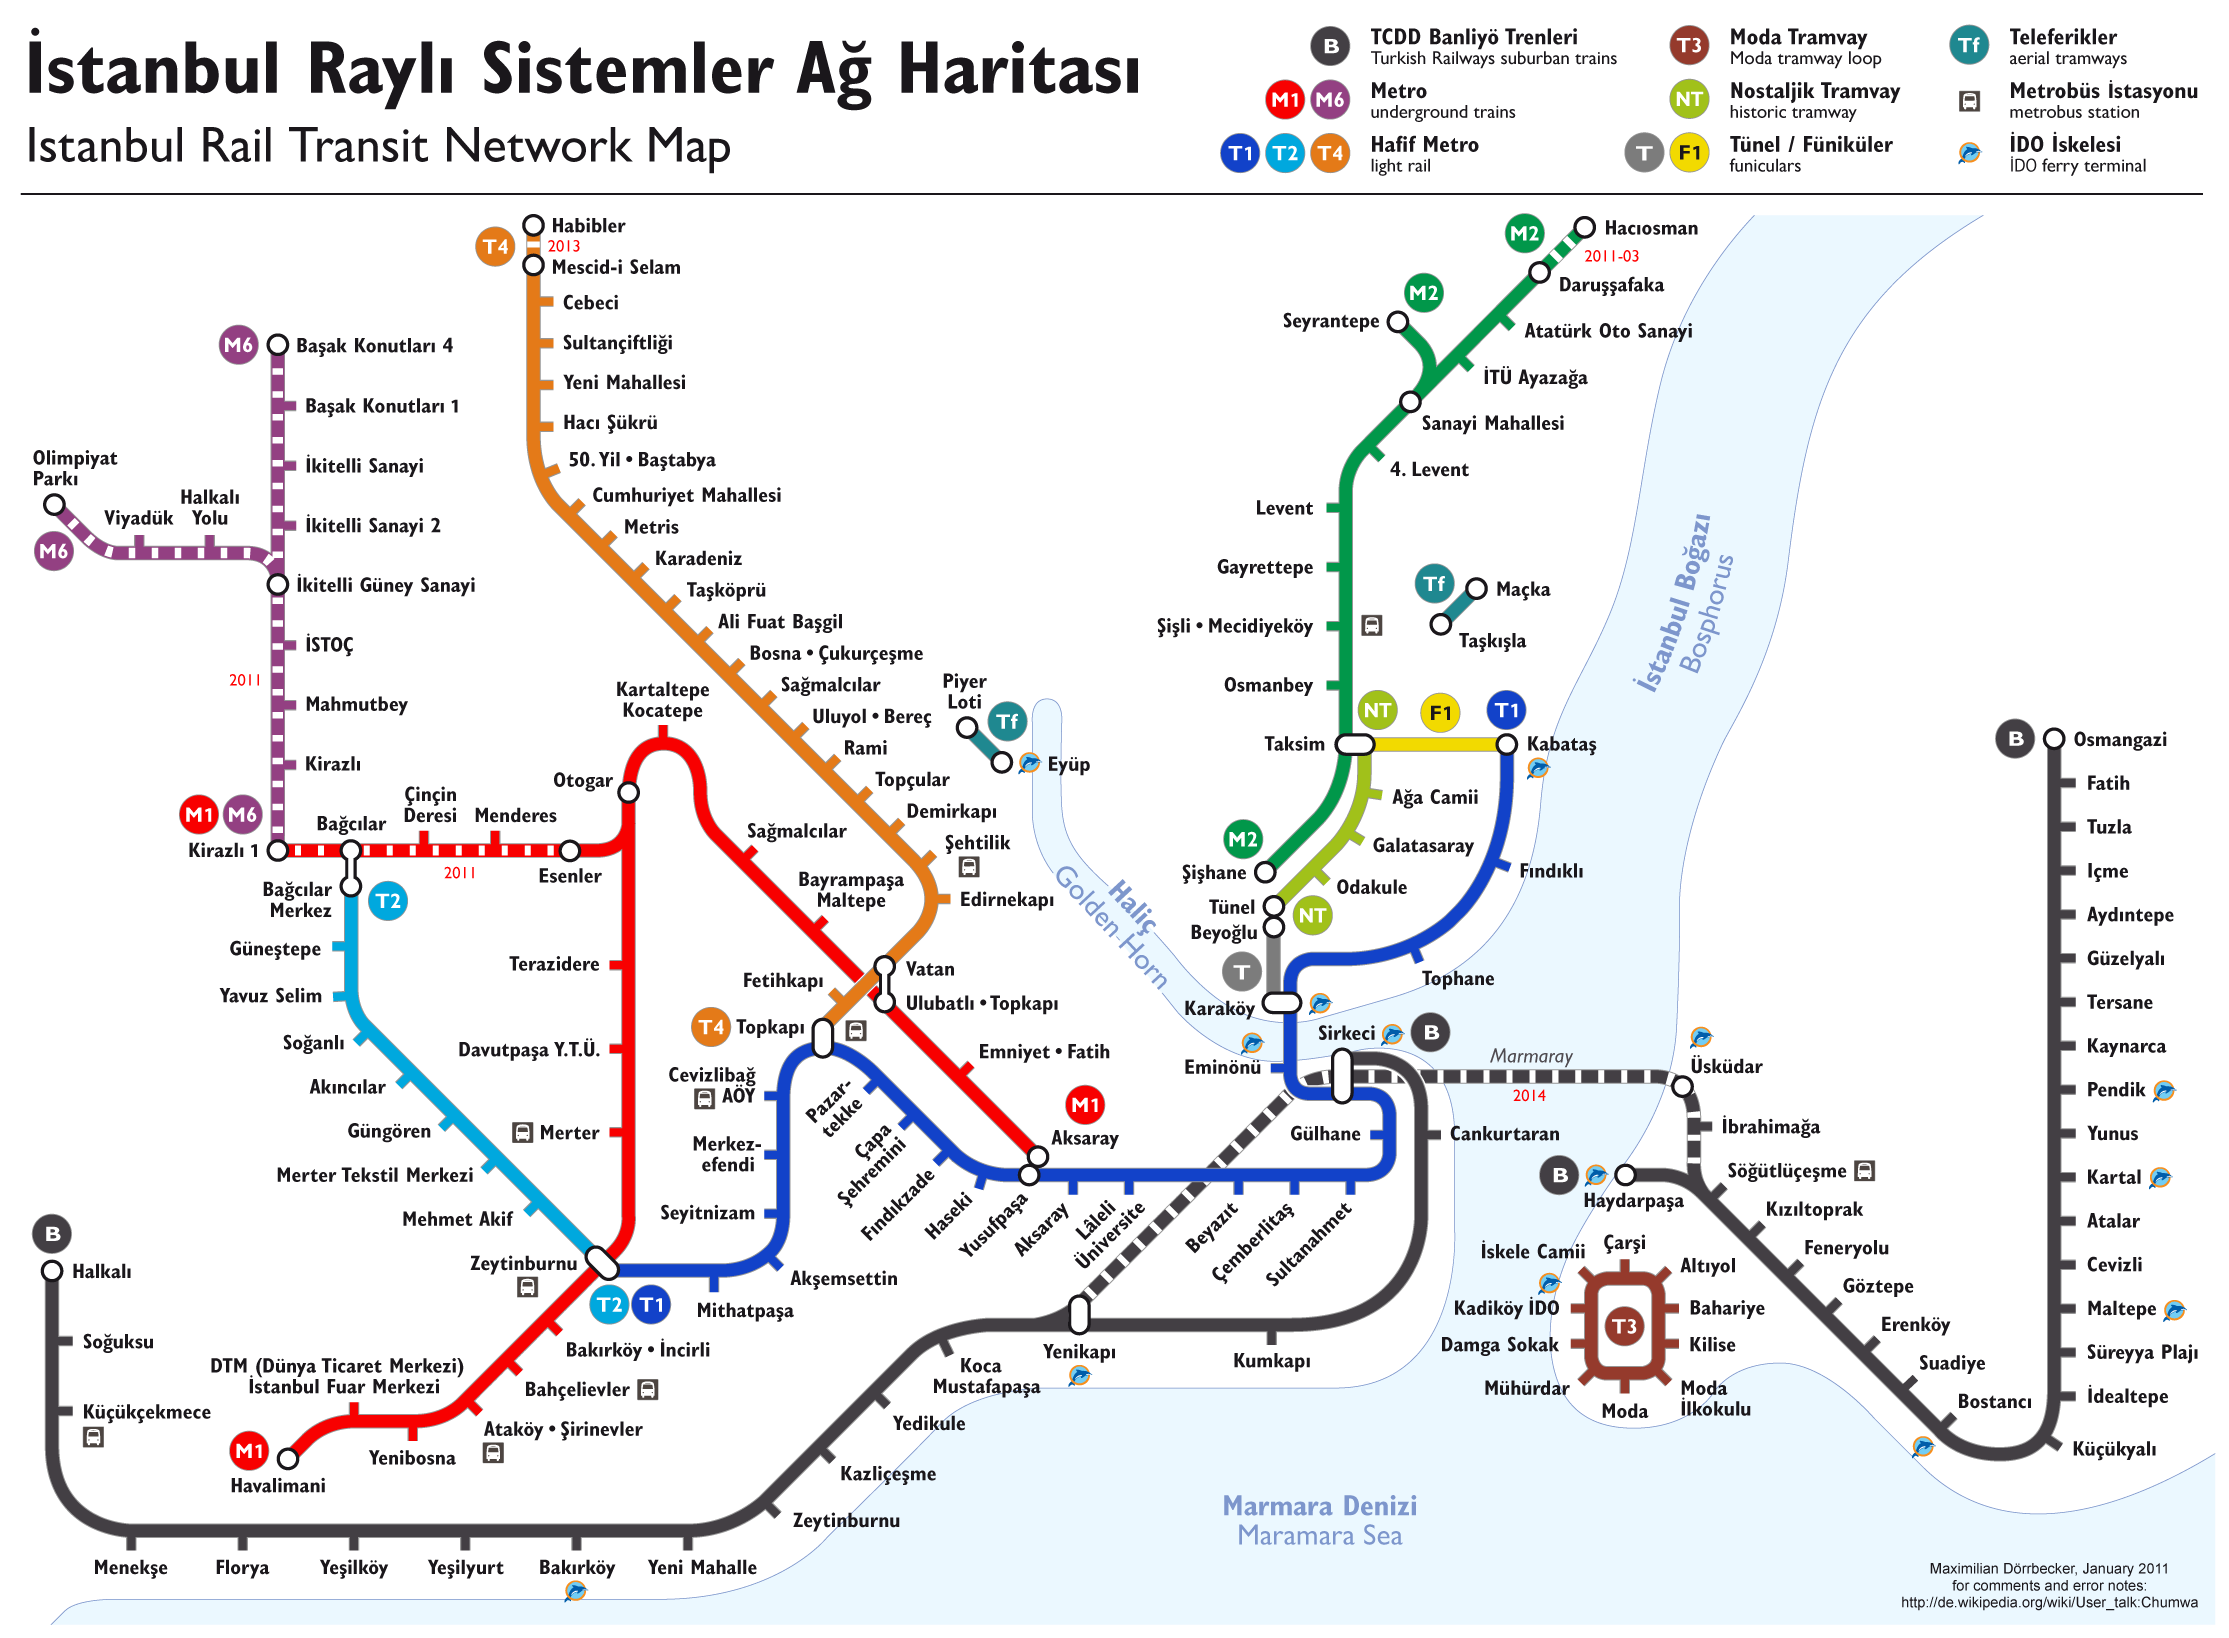 Datei:Istanbul Rapid Transit Map (schematic).png – Wikipedia